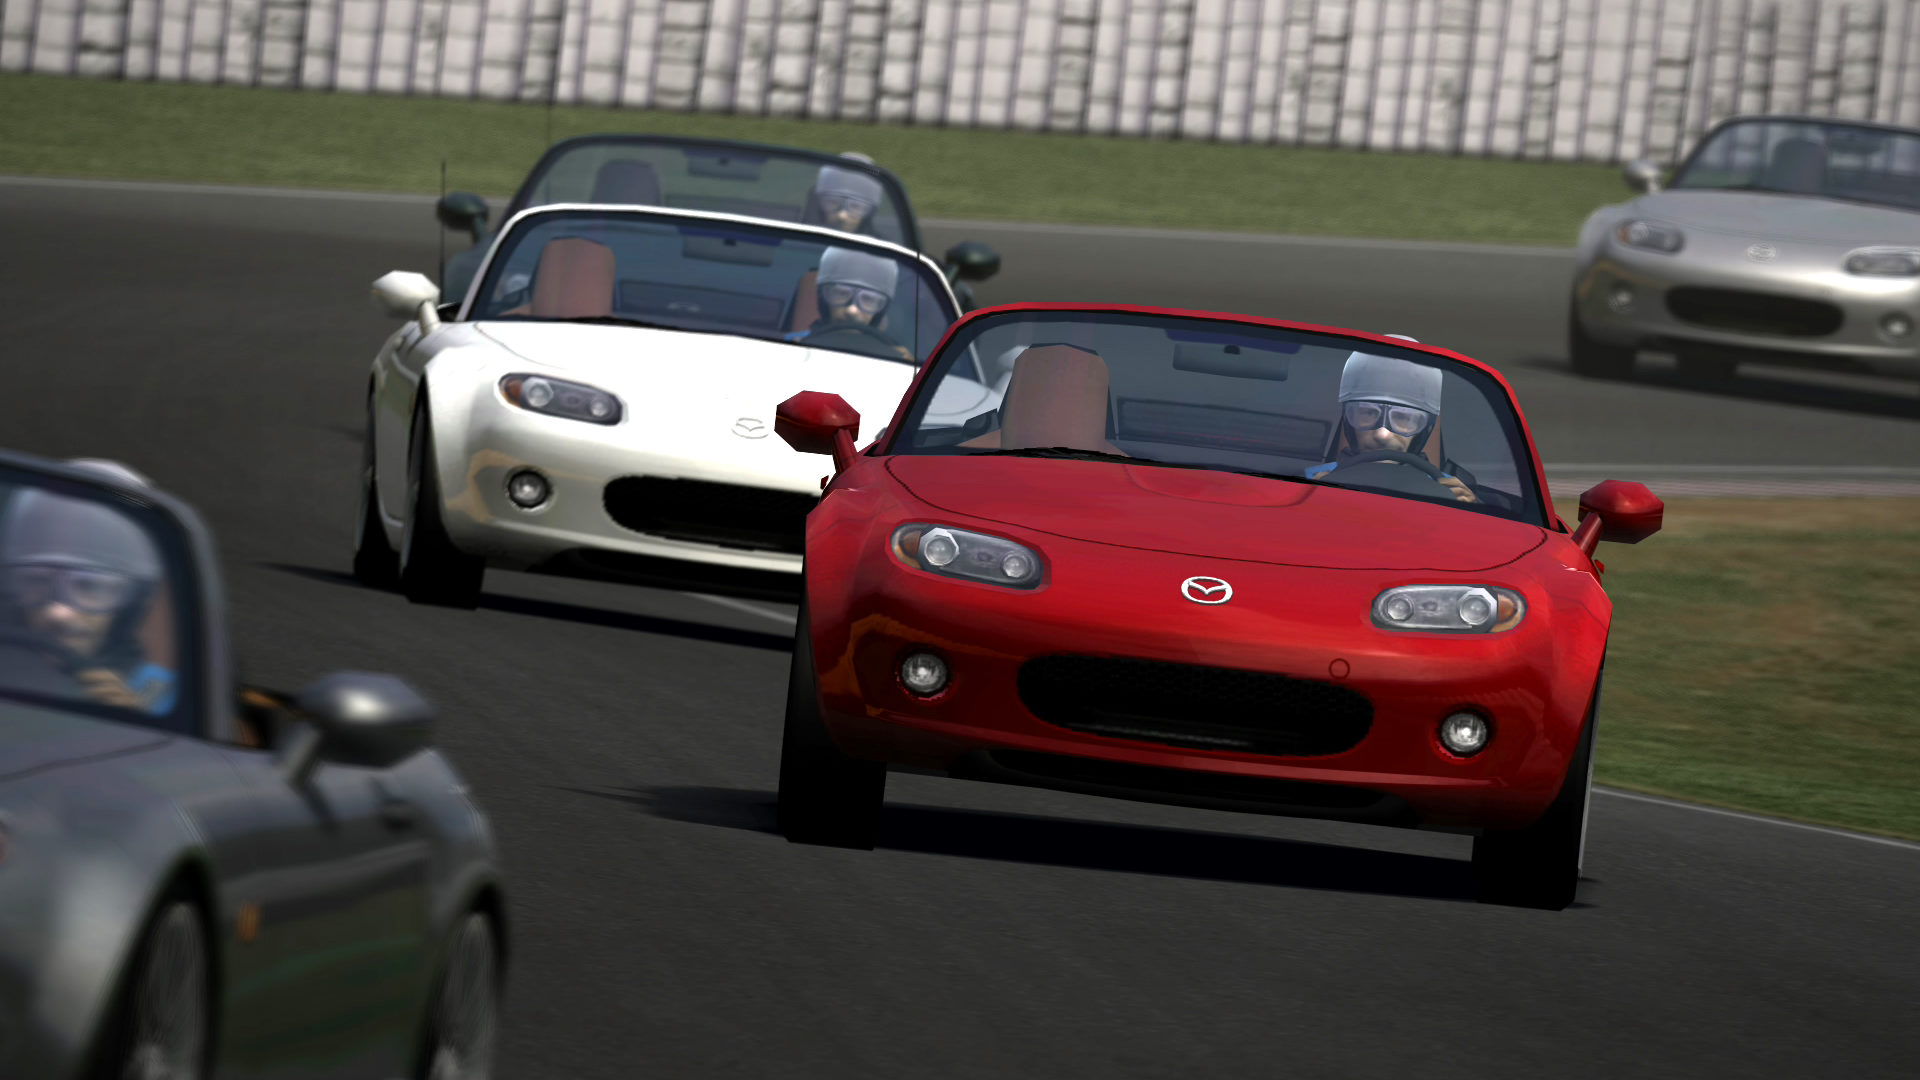 Gran Turismo (PlayStation Portable) - The Cutting Room Floor